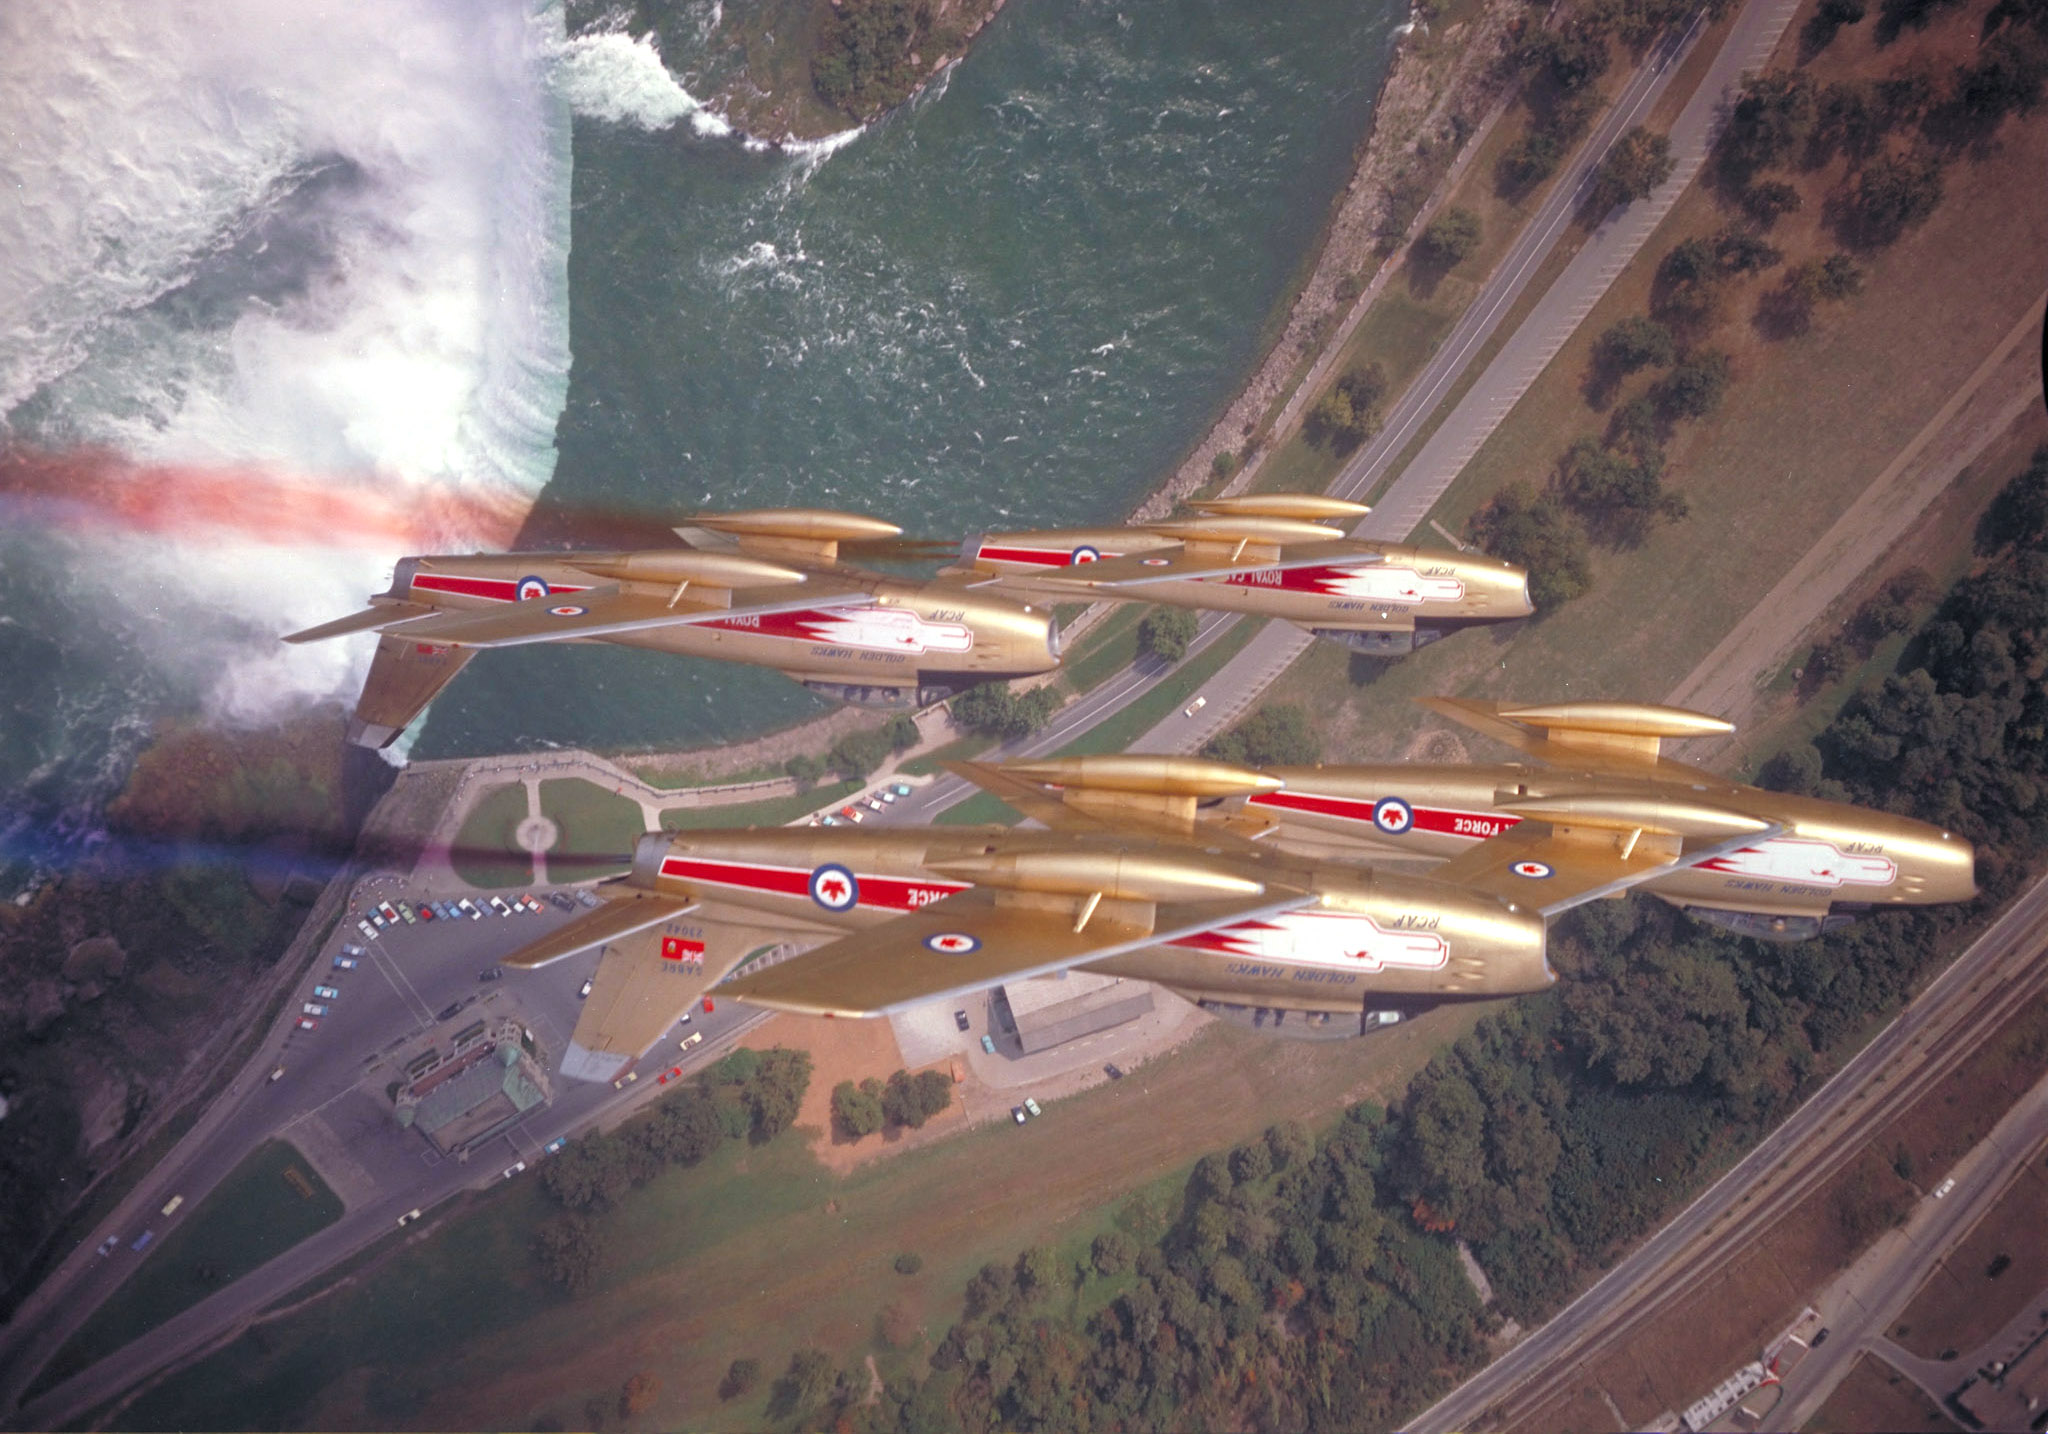 The Golden Hawks pull up after flying inverted over Niagara Falls on September 29, 1959. PHOTO: DND Archives, PCN-1058